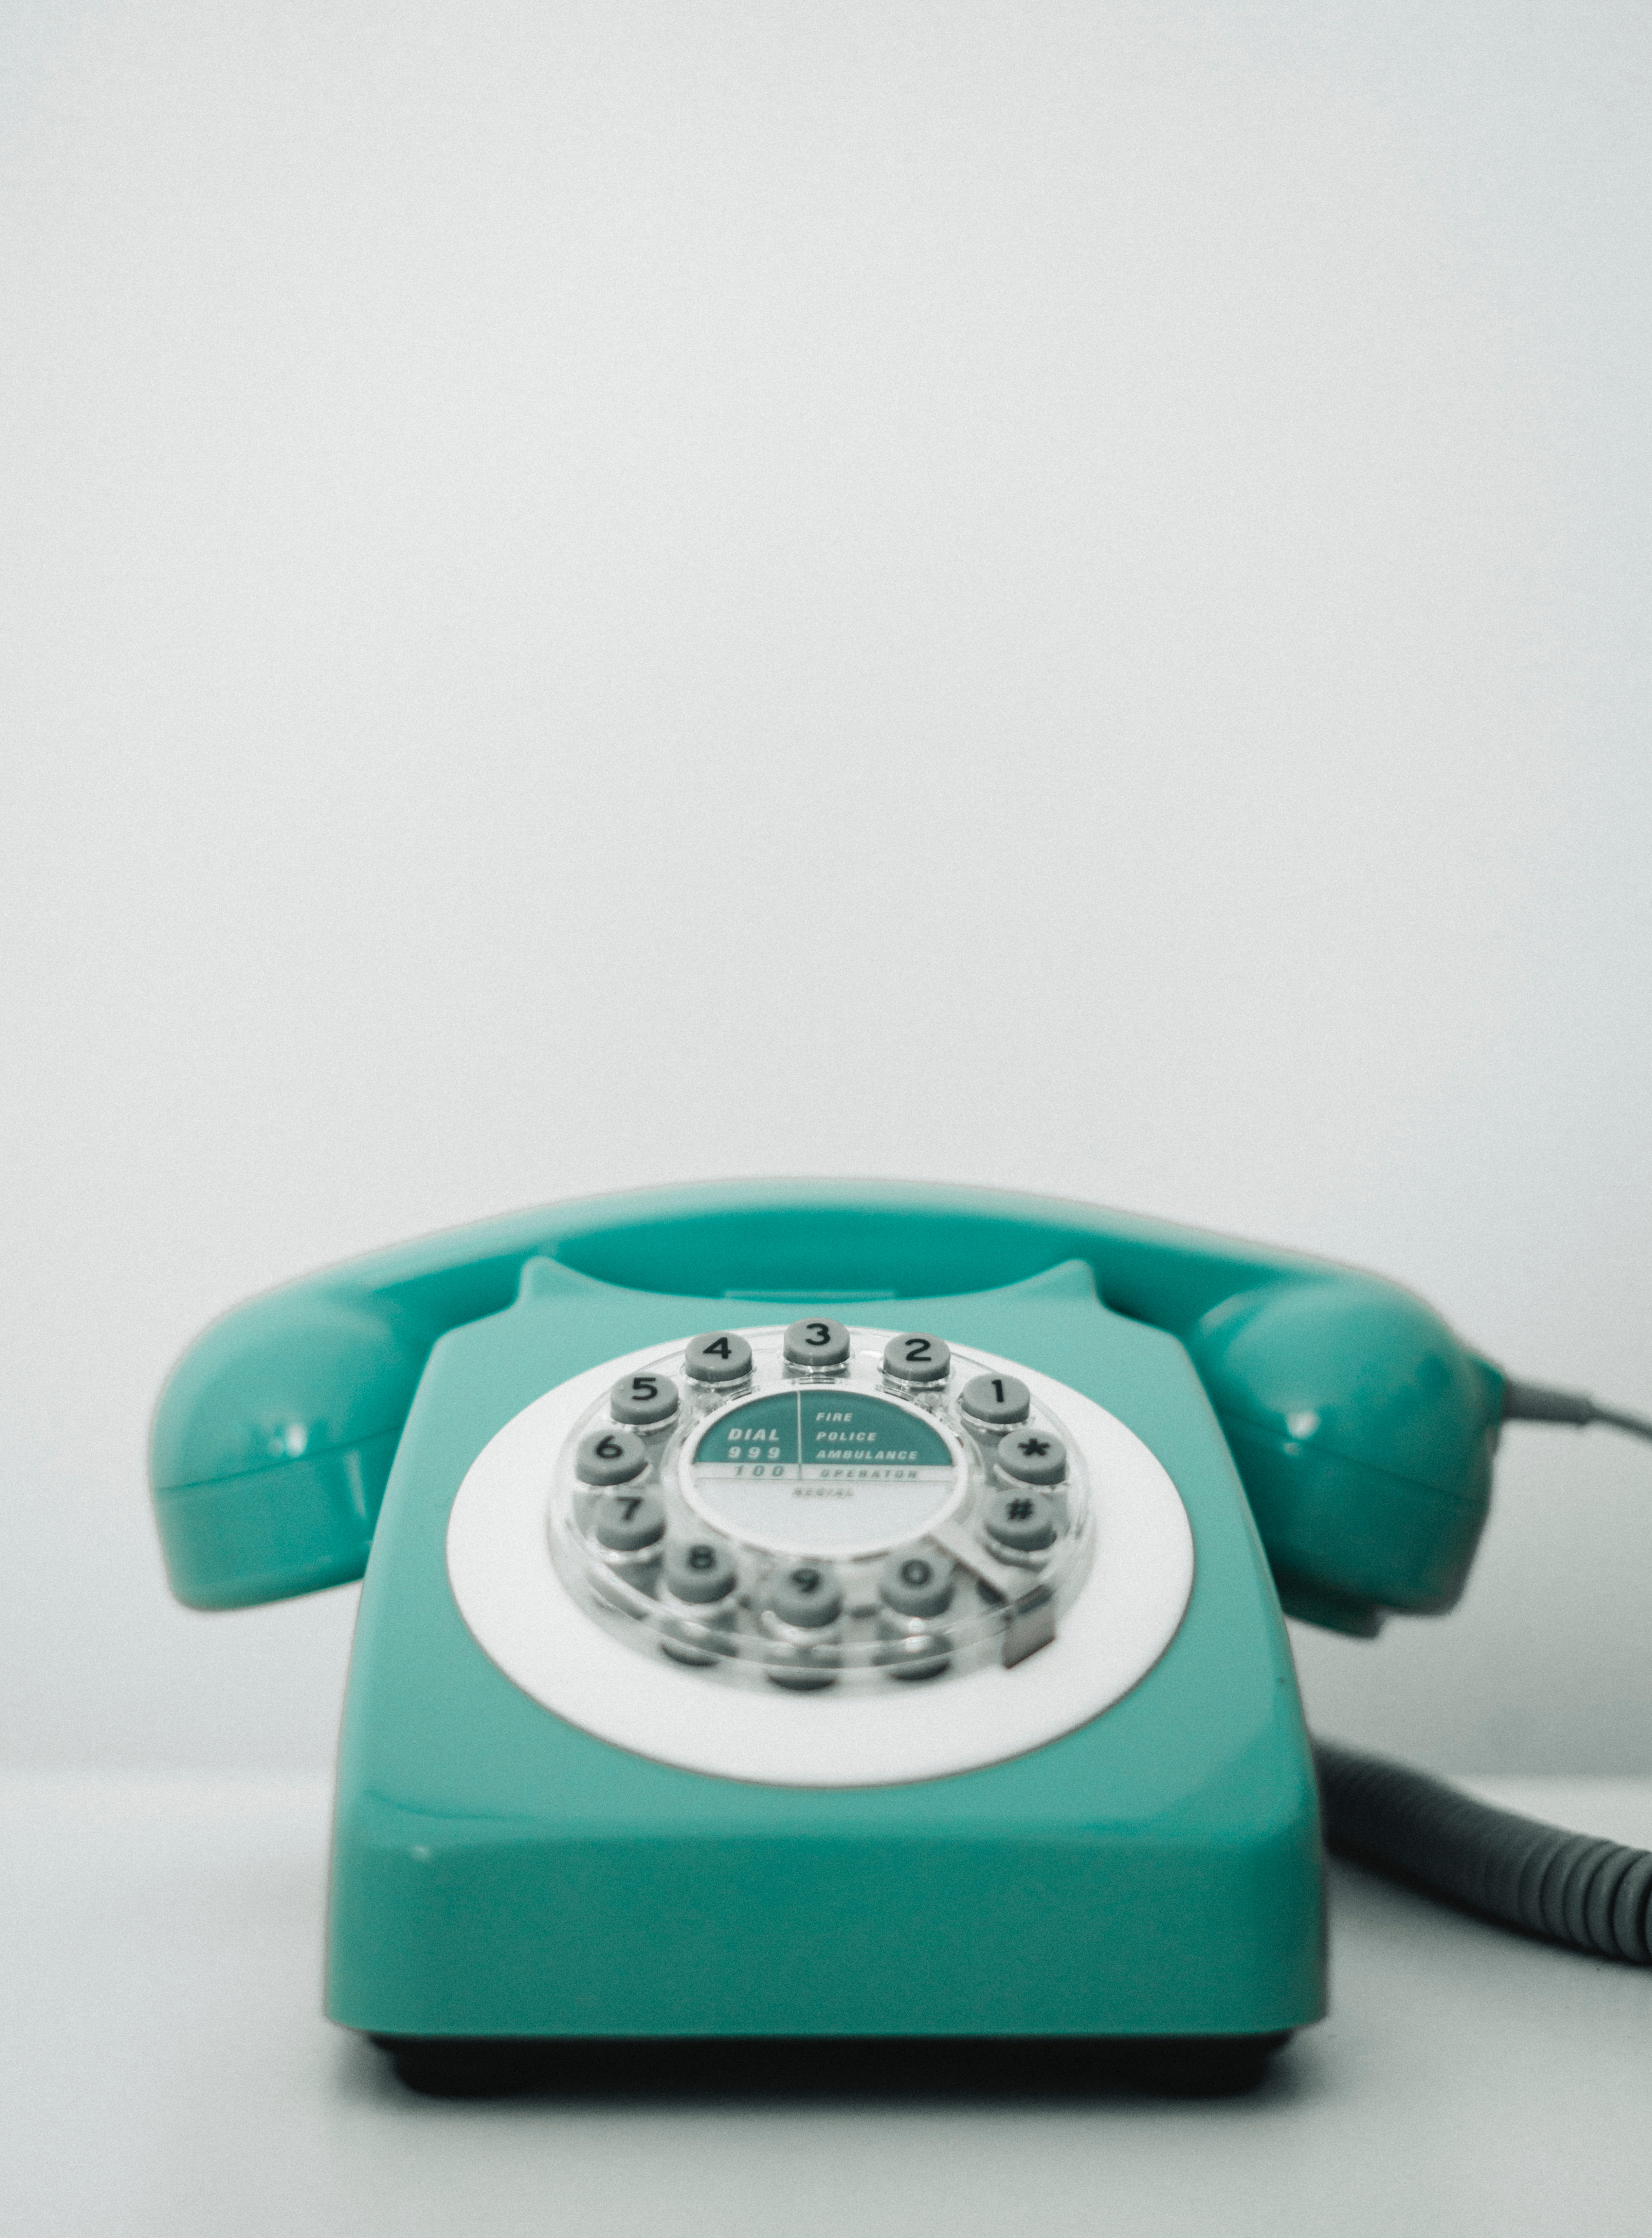 145179 free download Turquoise wallpapers for phone, Technologies, Technology, Telephone, Retro, Vintage, Old Turquoise images and screensavers for mobile